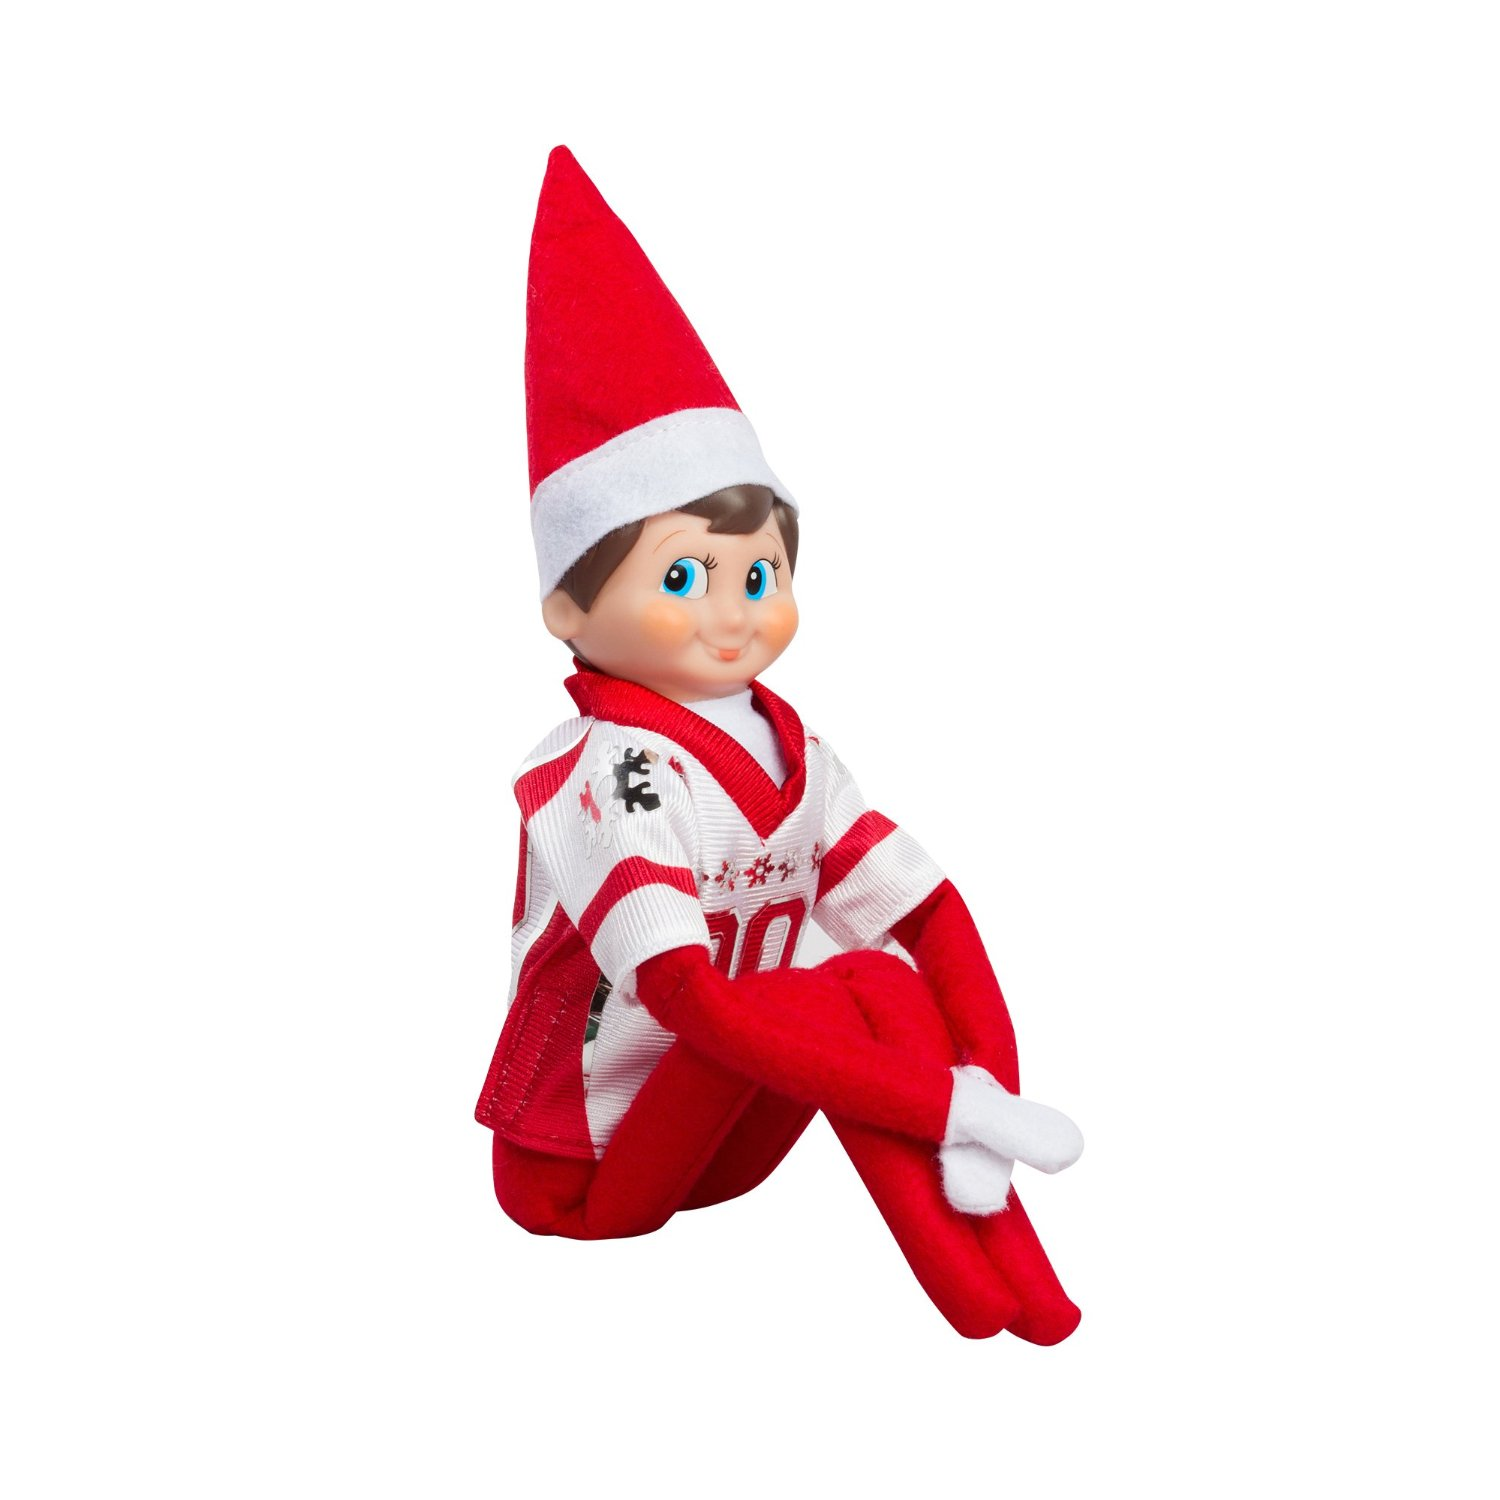 Shop Target for Elf on the Shelf you will love at great low prices. Free shipping & returns or free same-day pick-up in store.